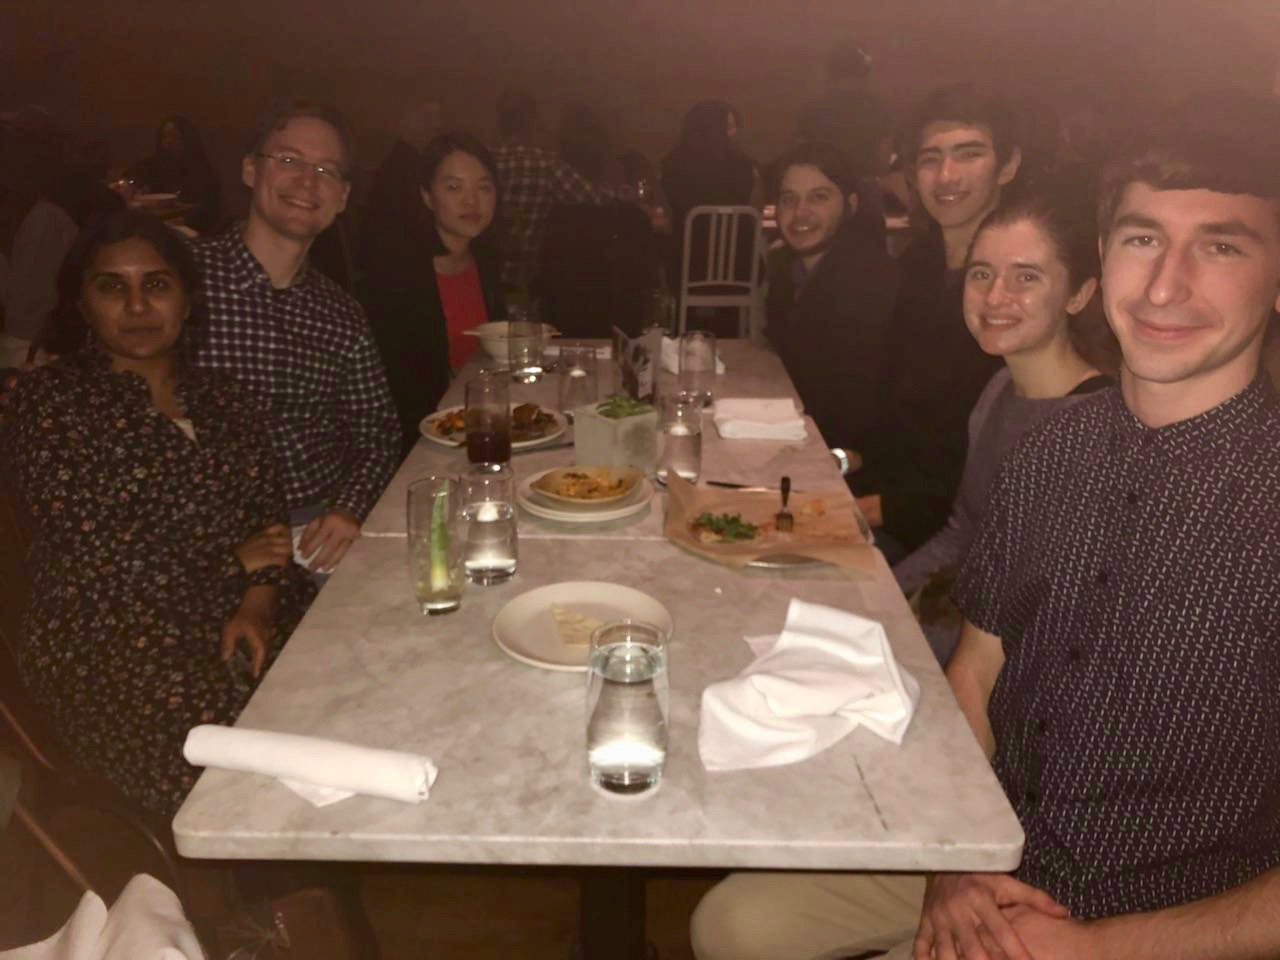 Sean Szeja (BS '03) hosted 5 undergraduate students for dinner at True Food Kitchen in Pasadena on Saturday, February 23, 2019.